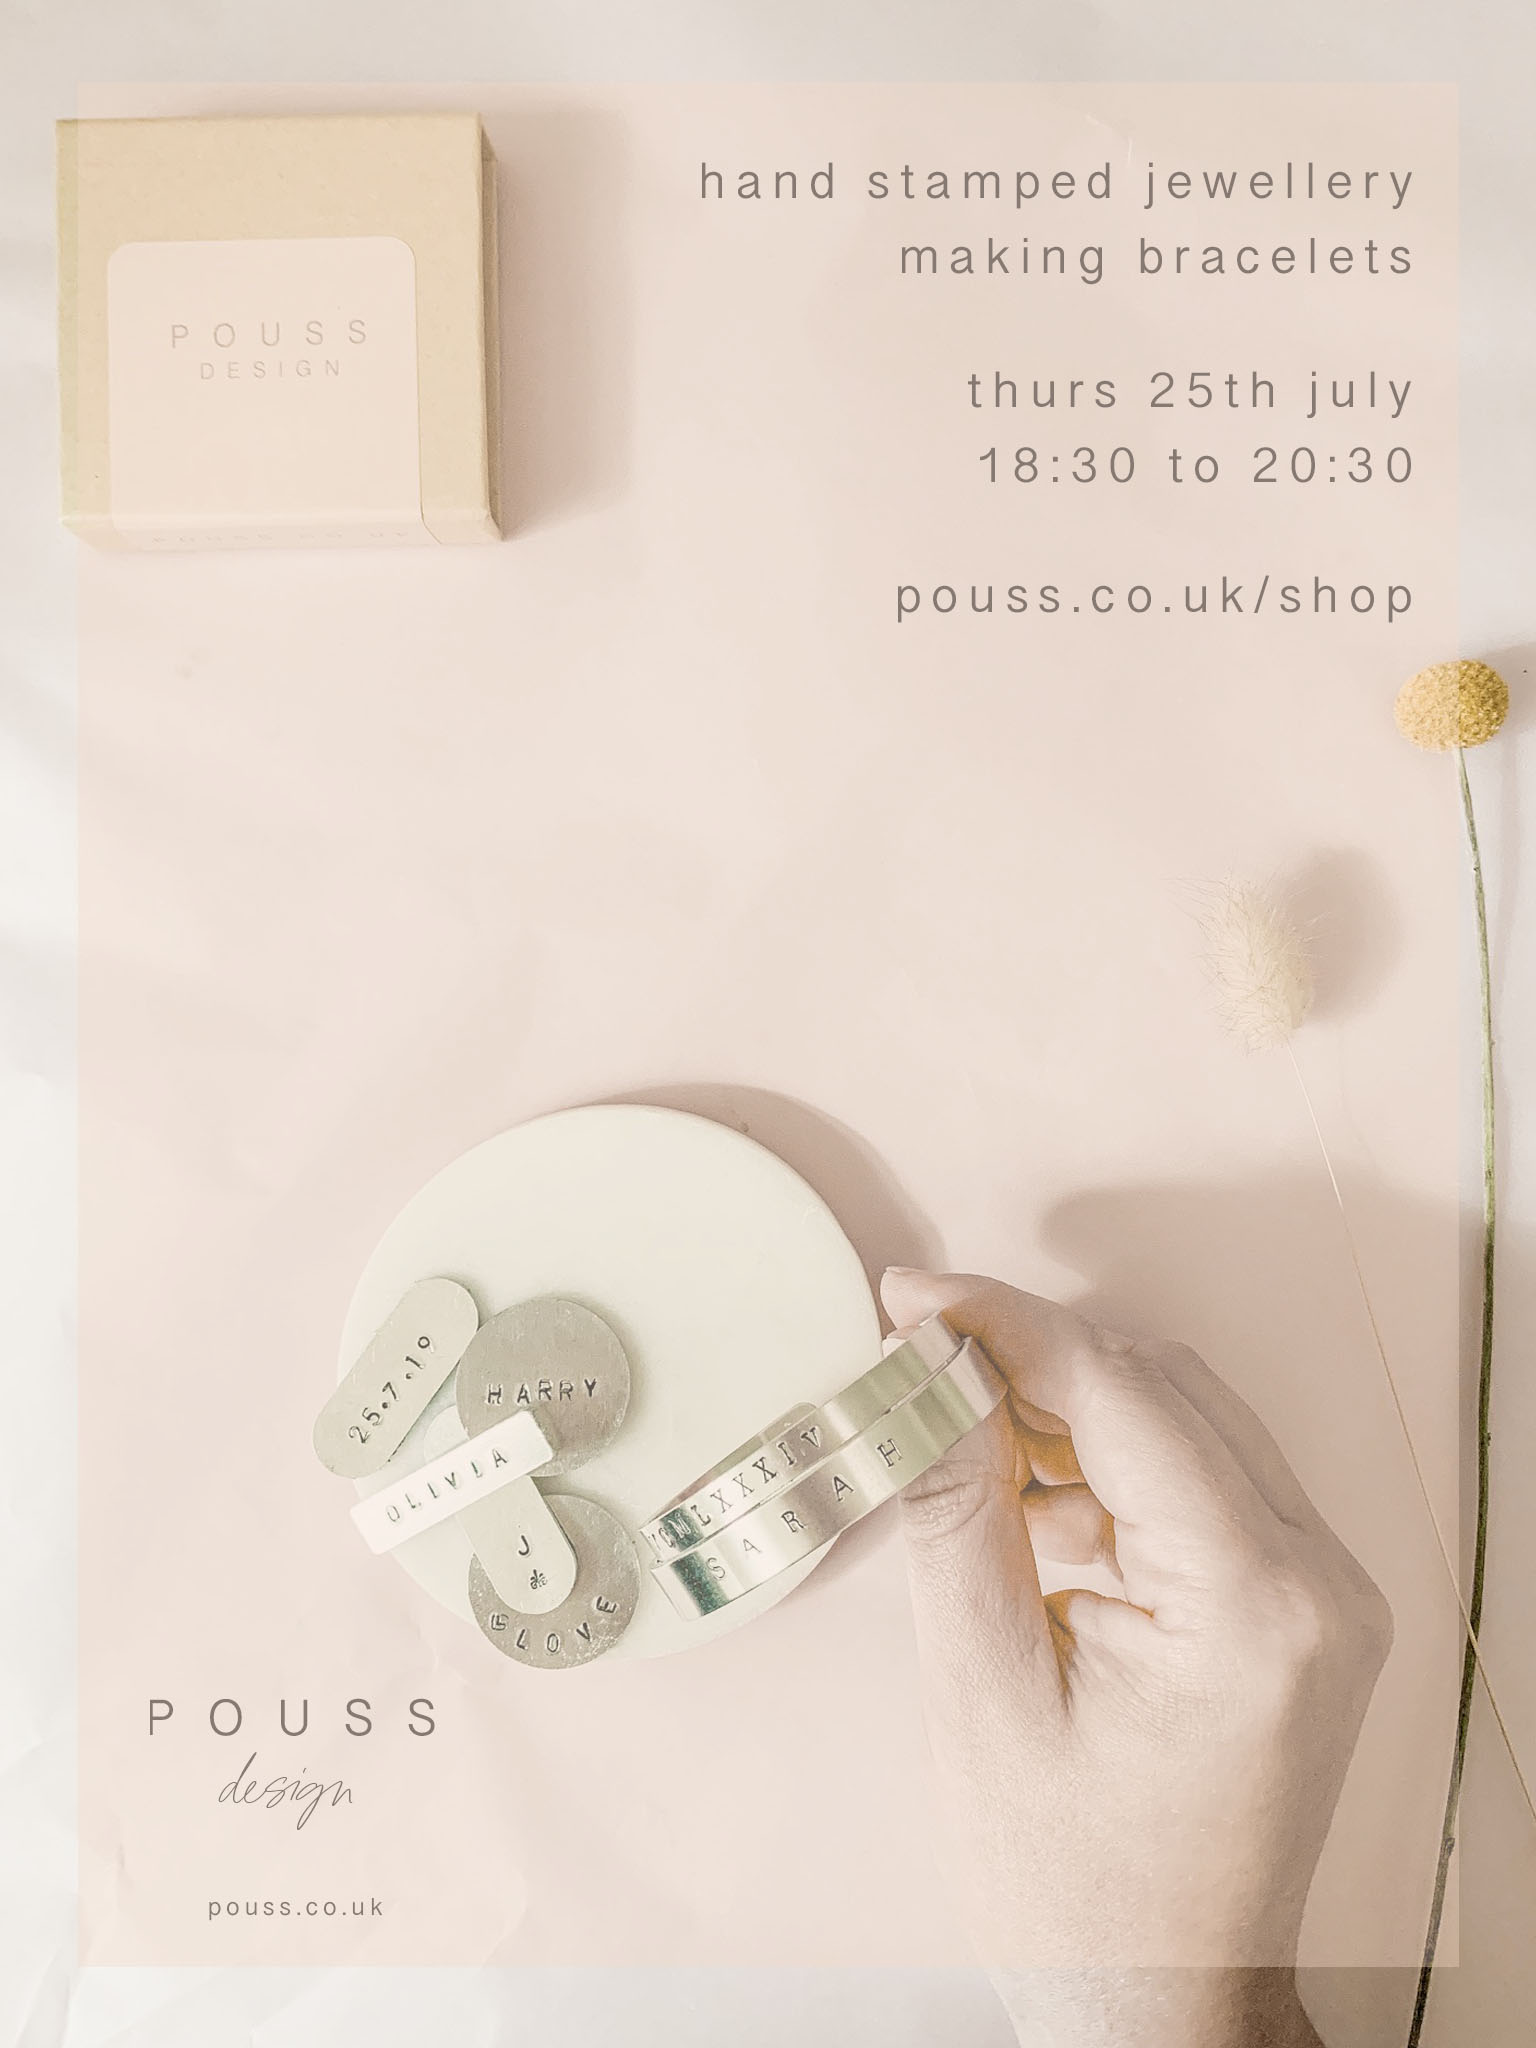 Pouss Design hand stamped workshop 25th July 2019